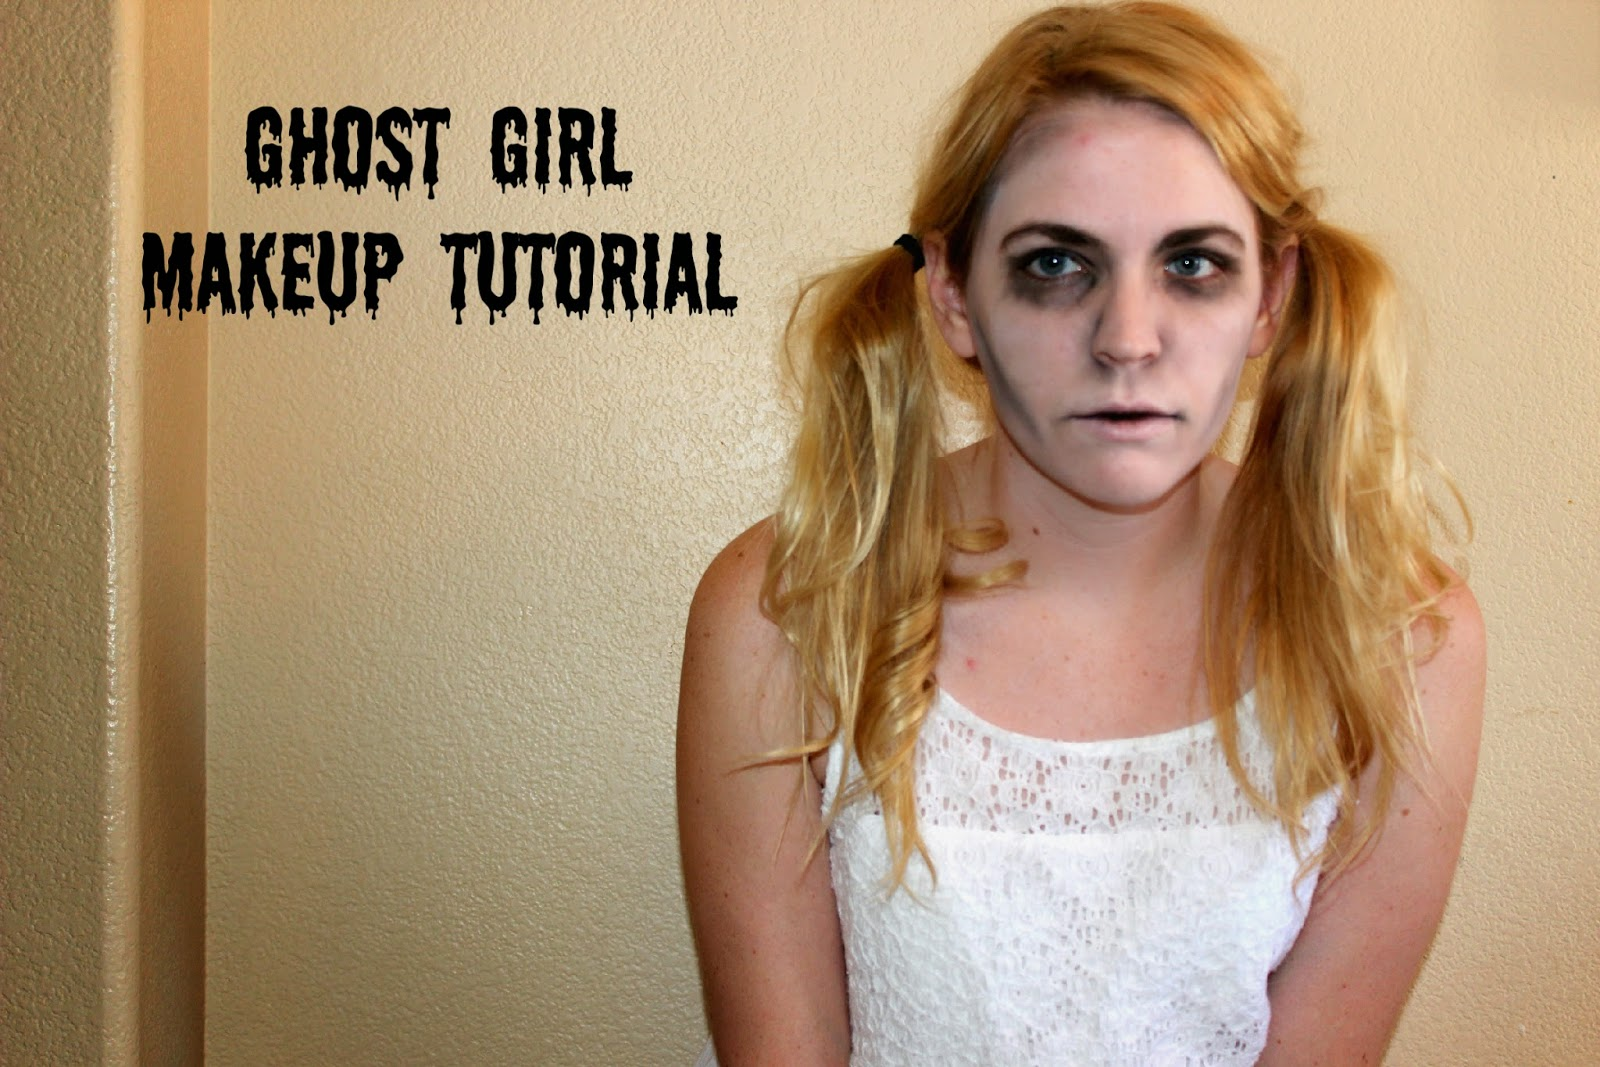 Diaries of a sunflower ghost girl makeup tutorial ghost girl makeup tutorial baditri Image collections